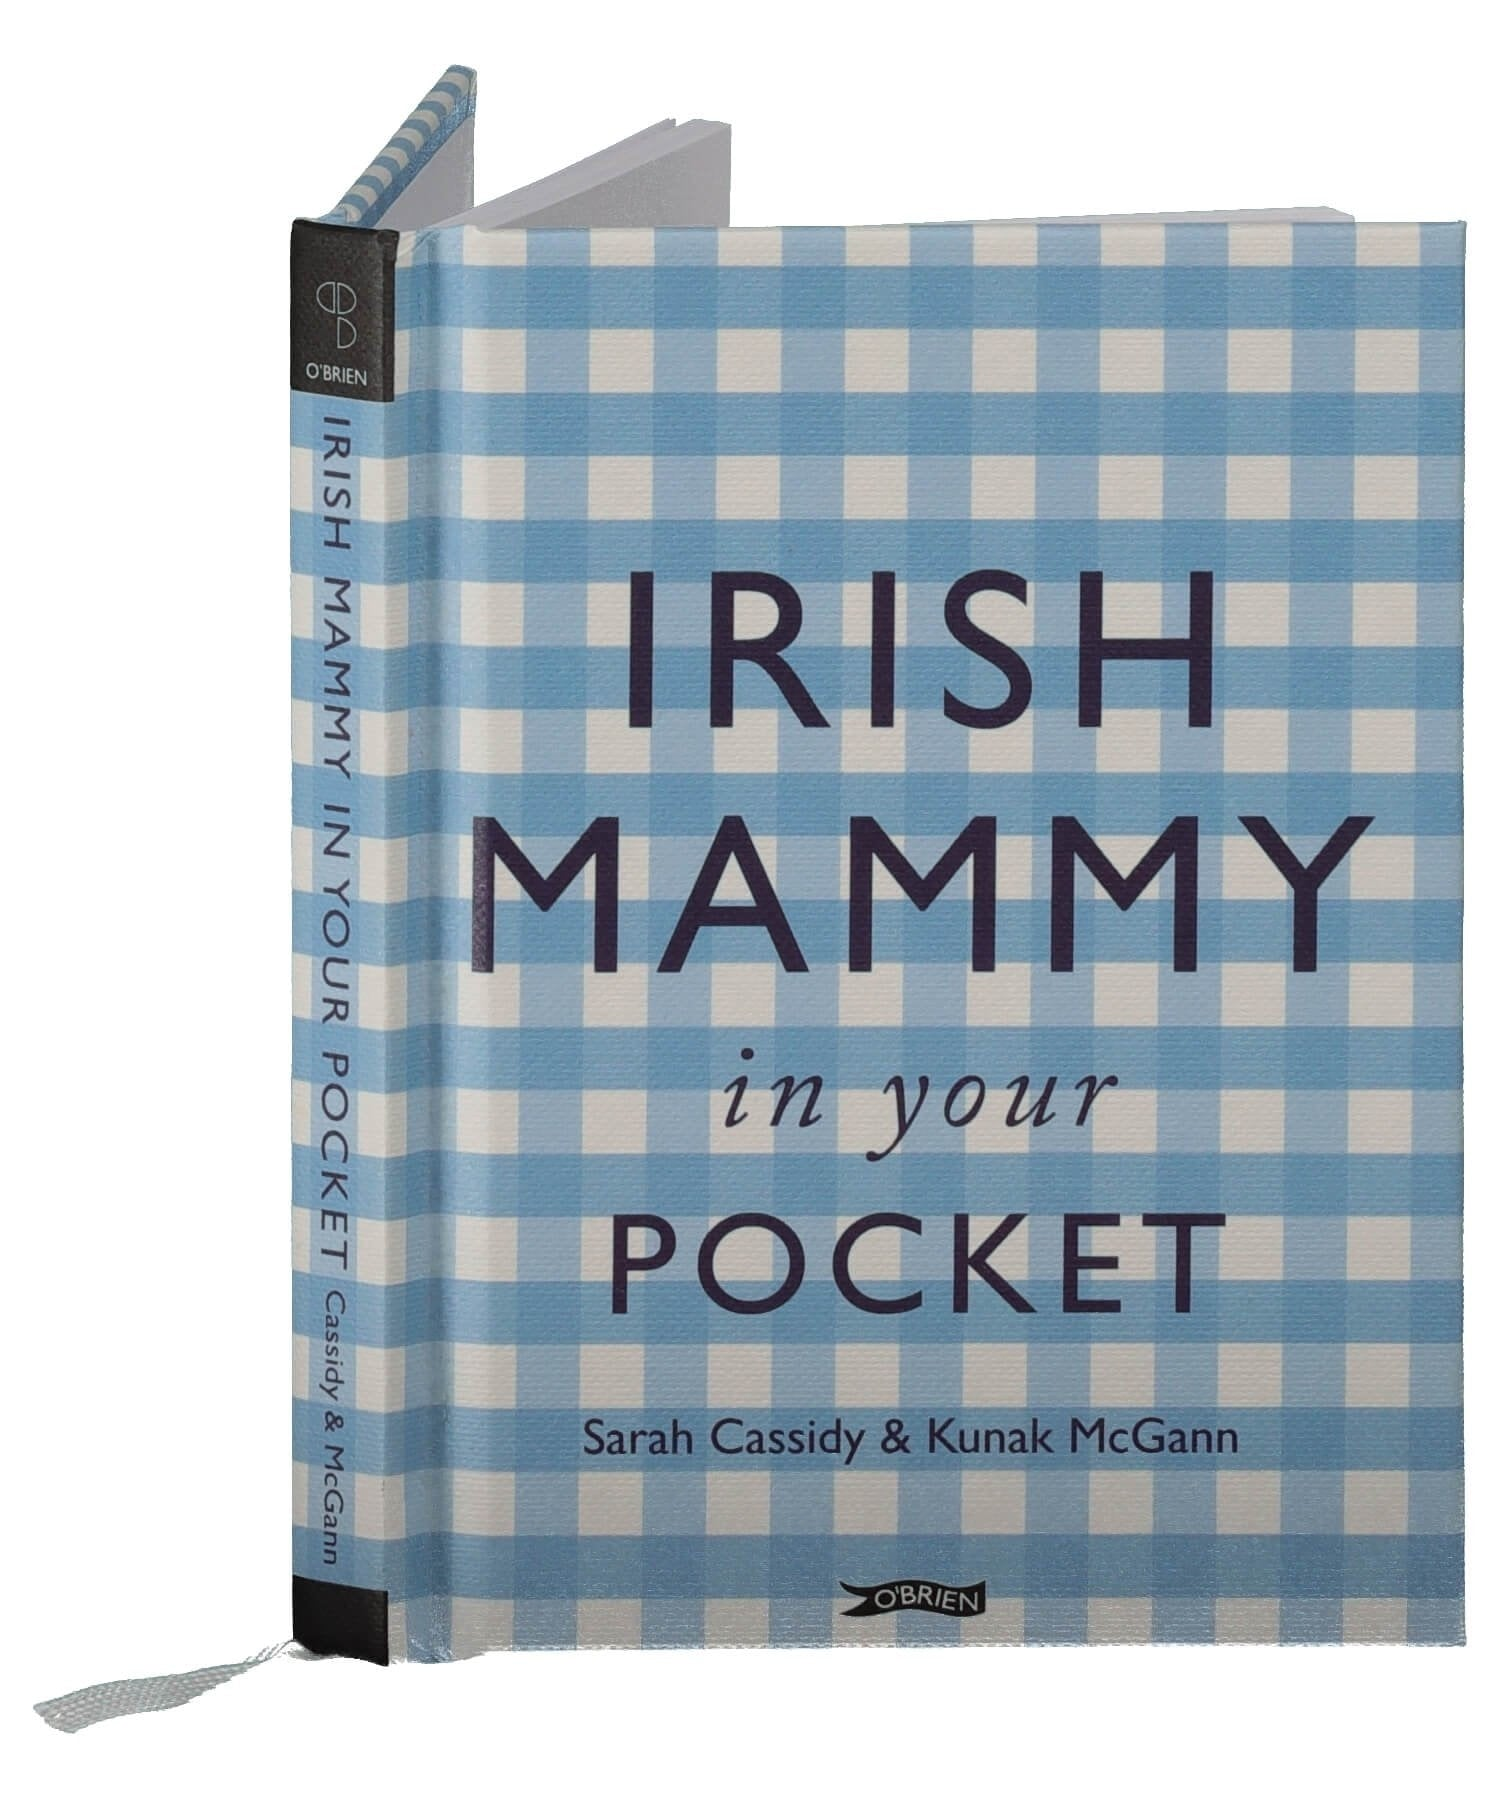 Irish Mammy In Your Pocket The OBrien Press Books